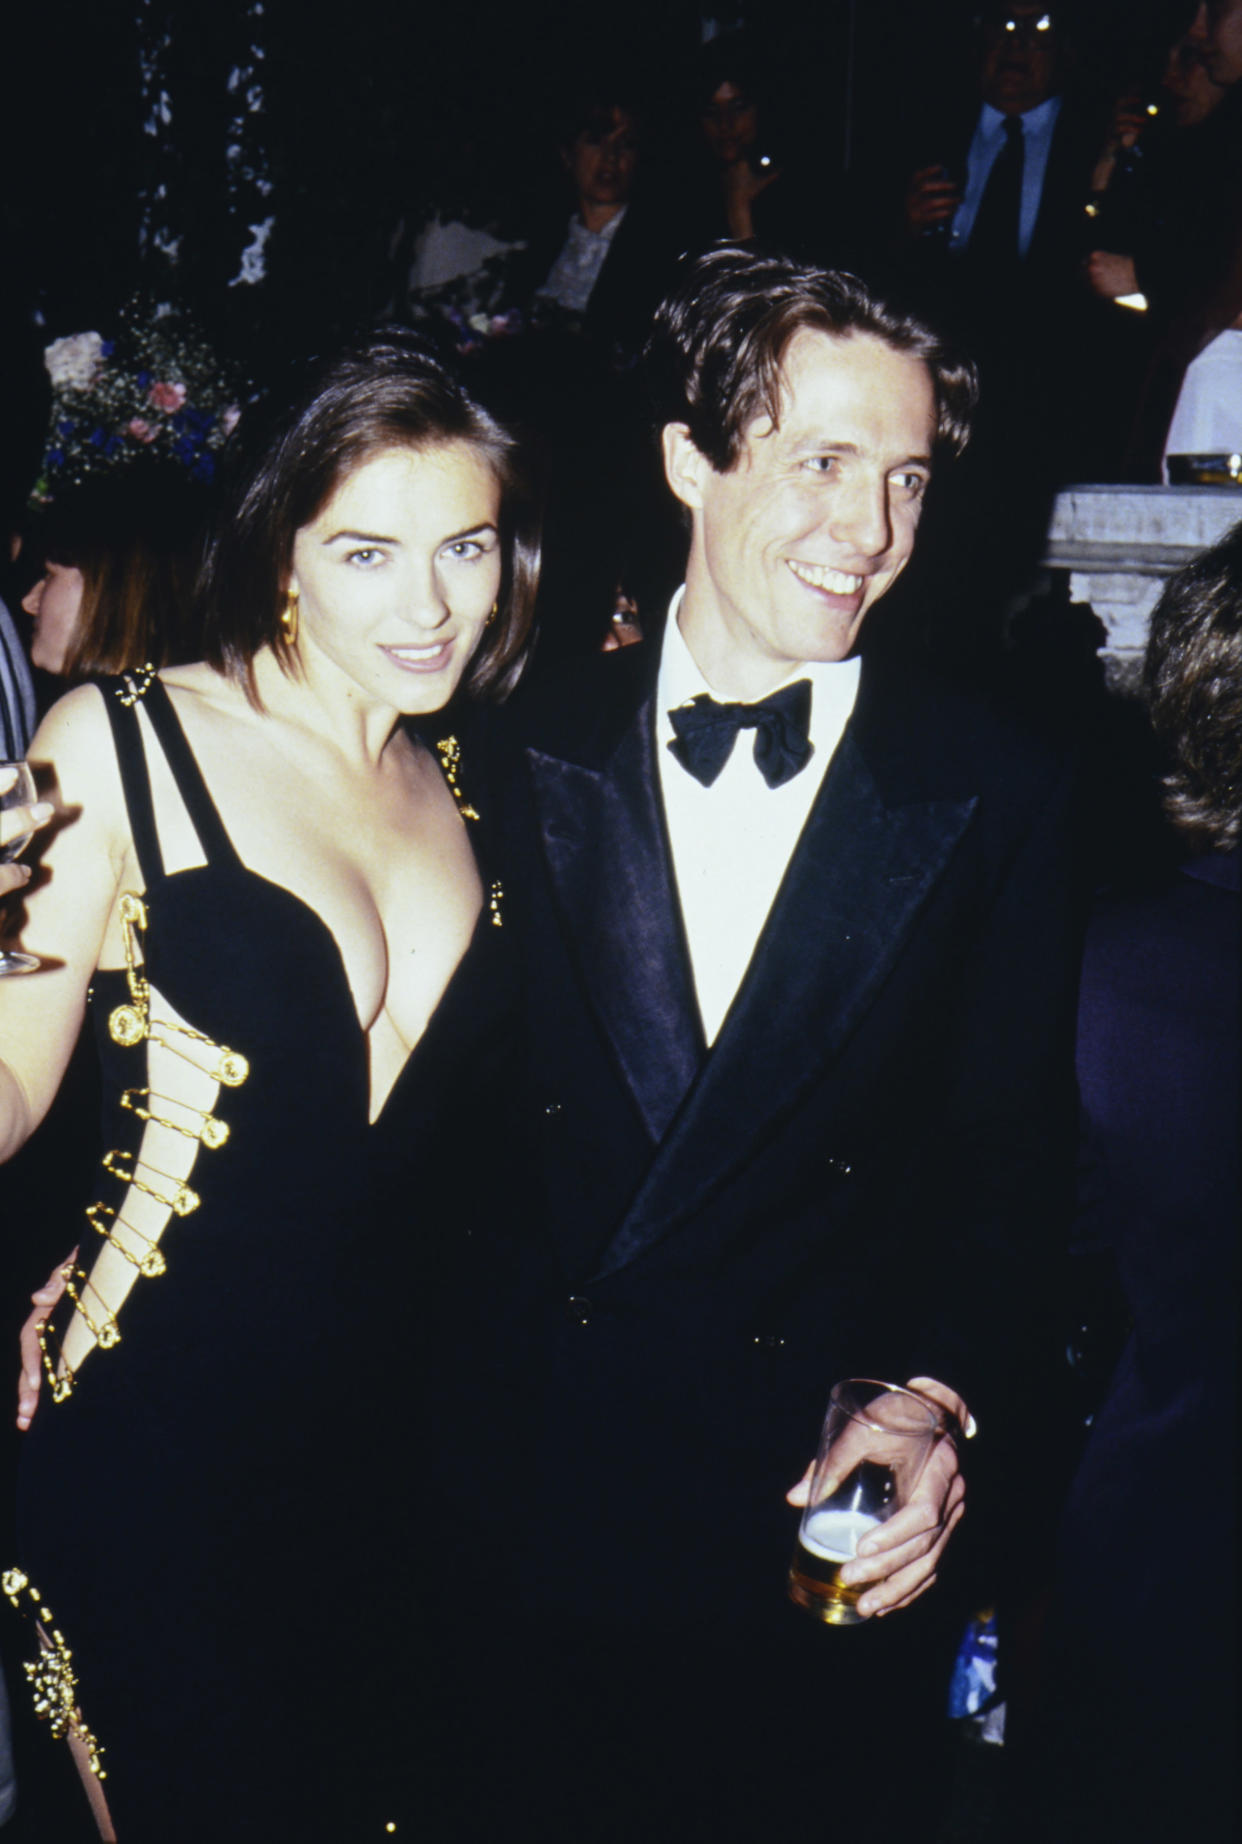 Elizabeth Hurley, famously wearing a Versace dress held together with gold safety pins, and Hugh Grant in 1994 in London. (Photo: Comic Relief/Comic Relief via Getty Images)